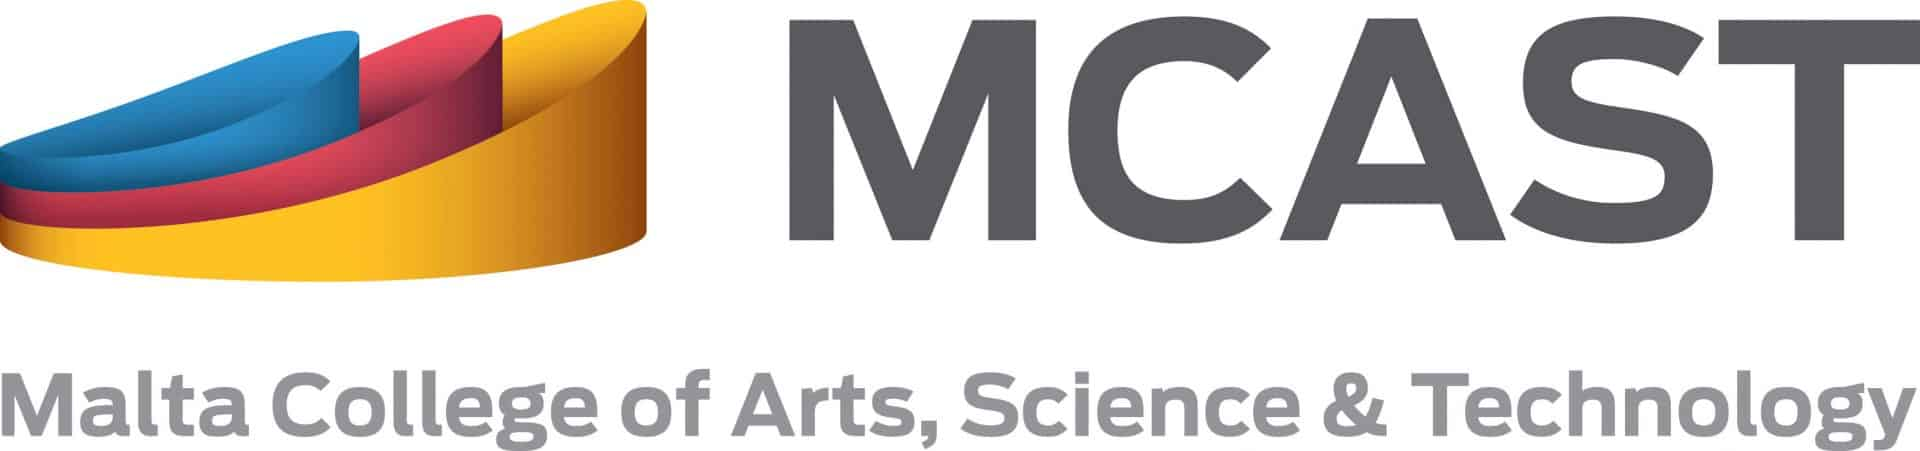 Malta College of Arts, science & technology logo